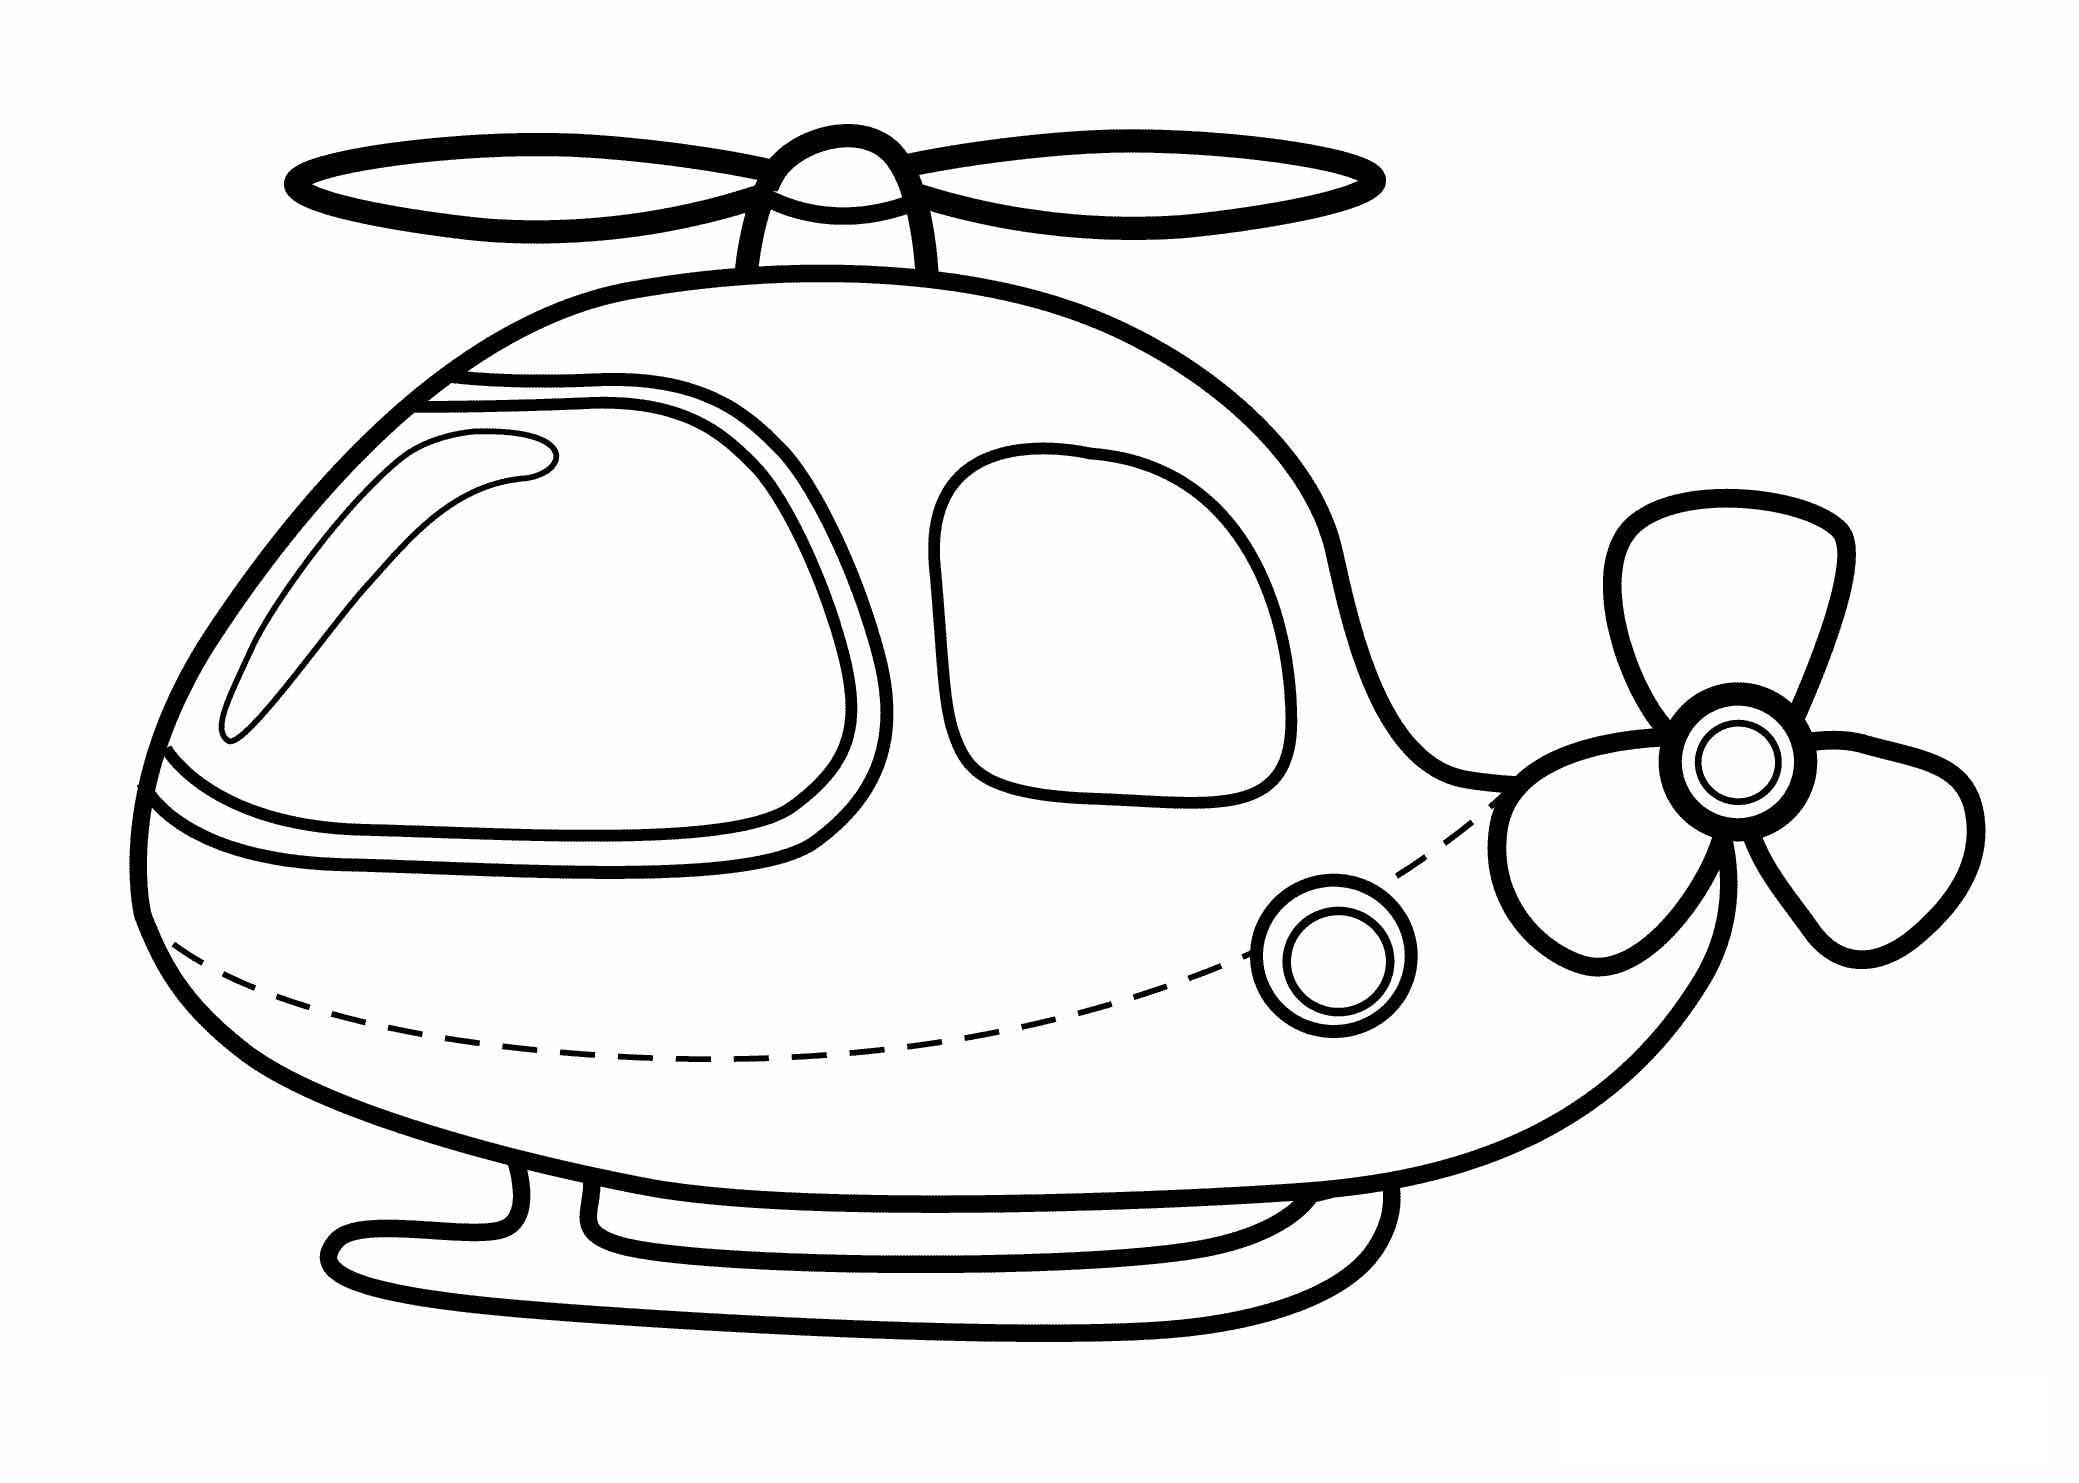 helicopter colouring pages free printable helicopter coloring pages for kids helicopter pages colouring